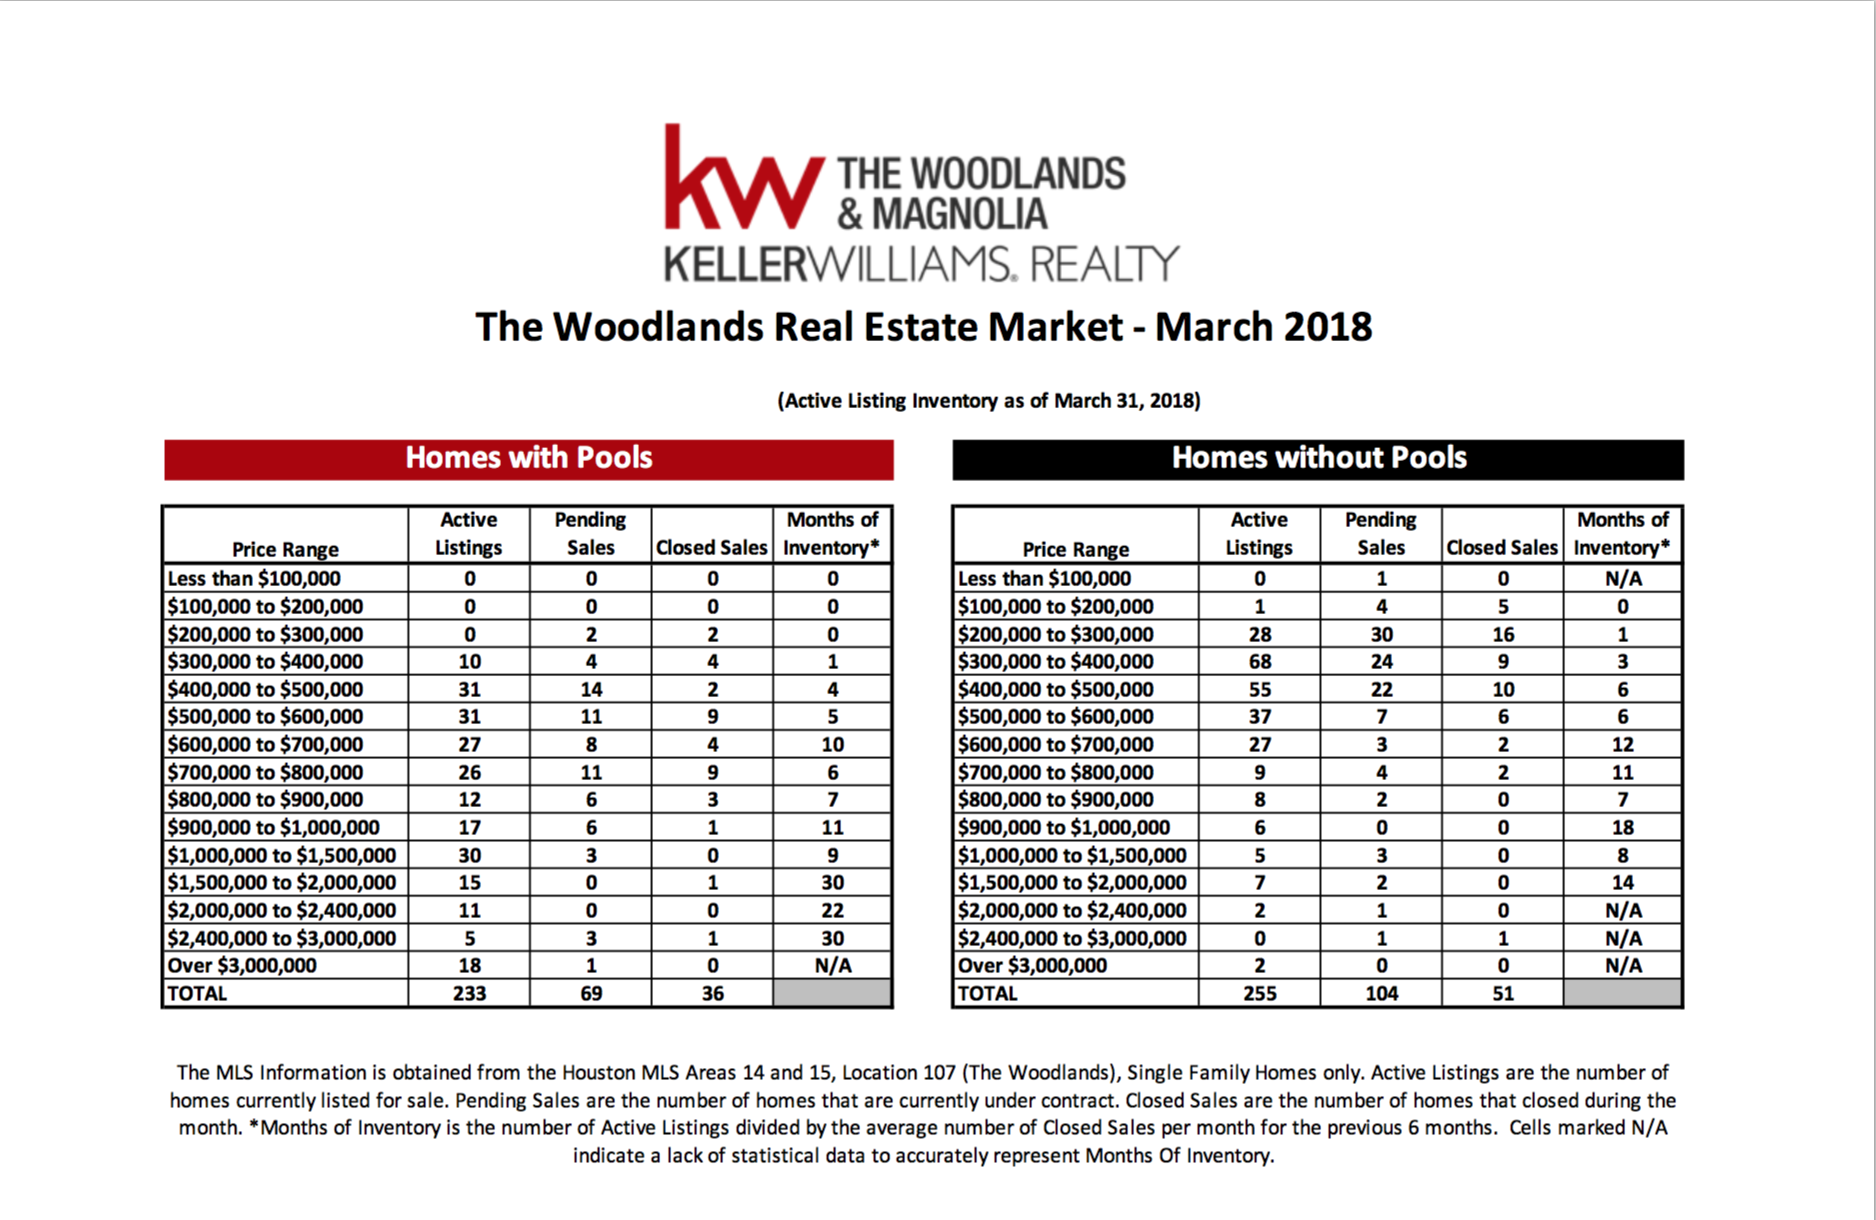 , March 2018 Marketwatch Report – The Woodlands, KW Woodlands